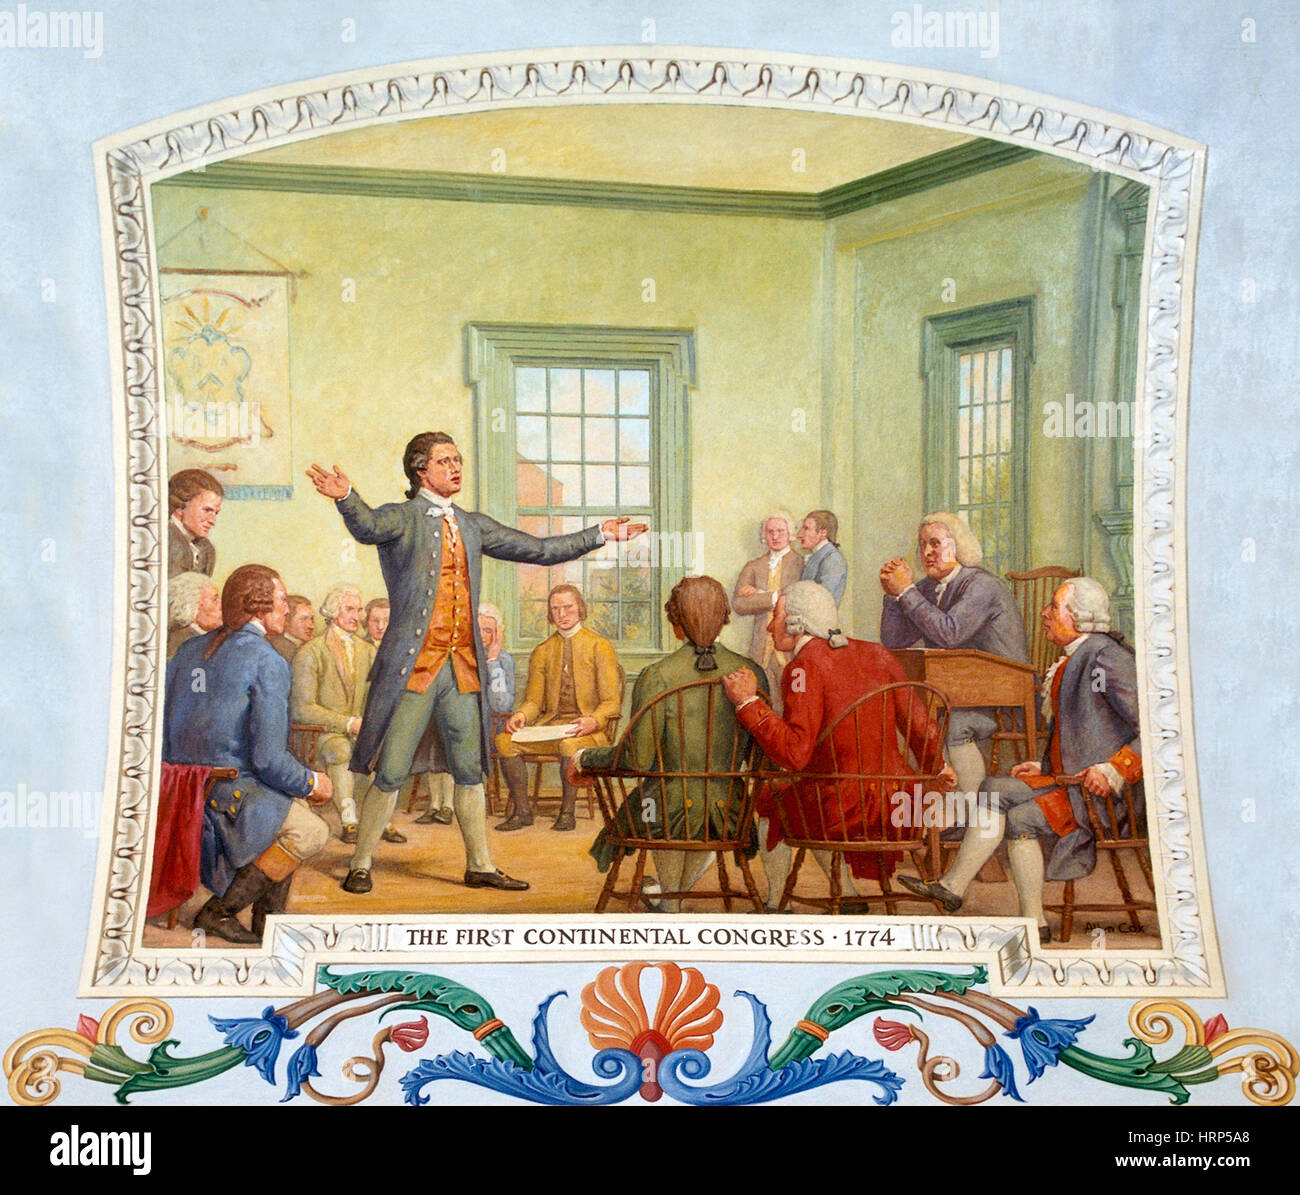 Patrick Henry, First Continental Congress, 1774